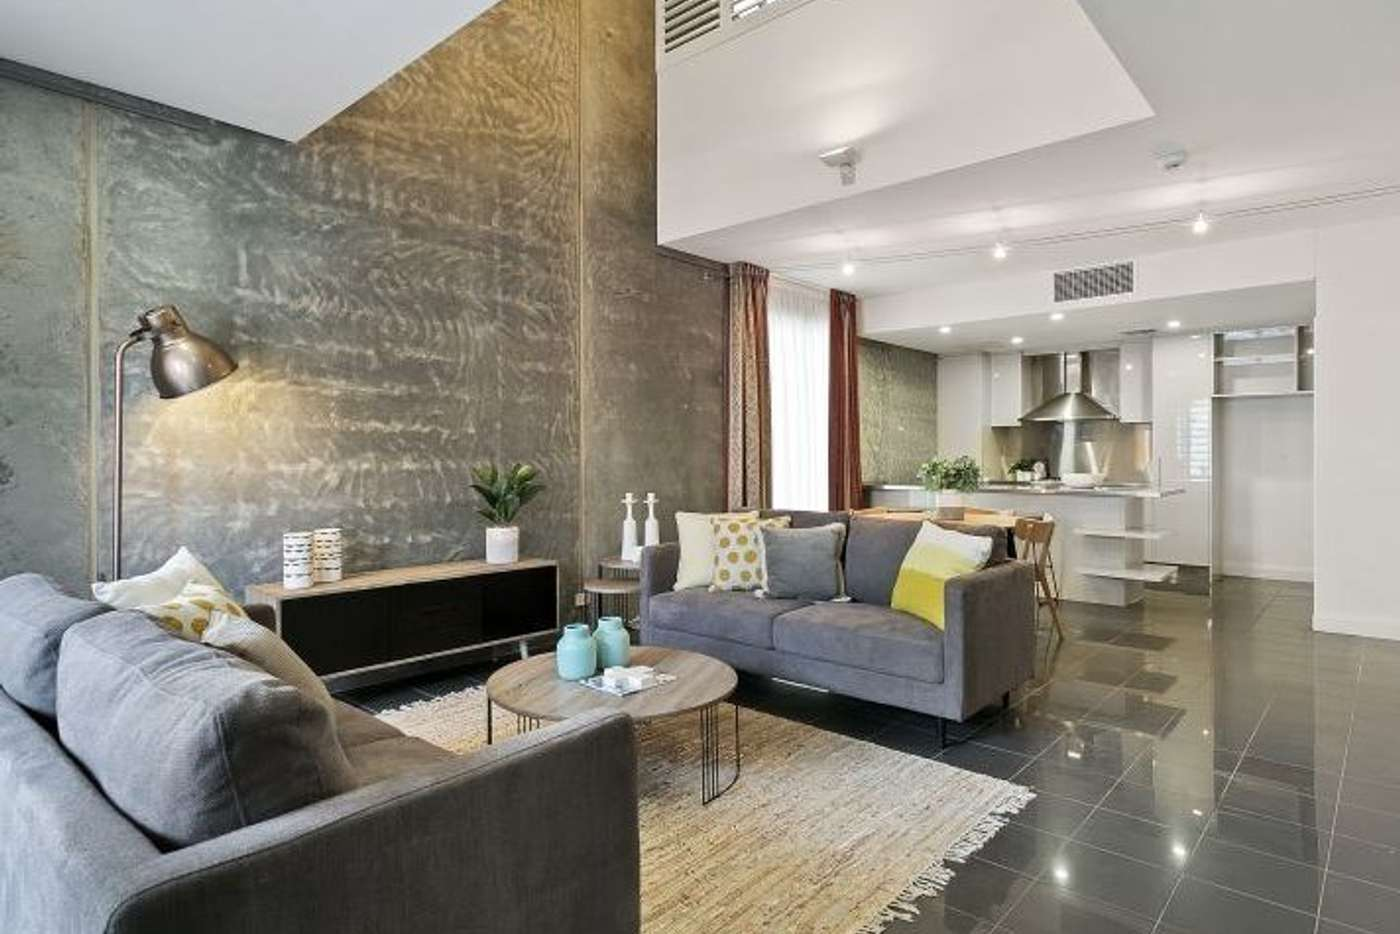 Main view of Homely house listing, 3/21 Russell Street, Adelaide SA 5000